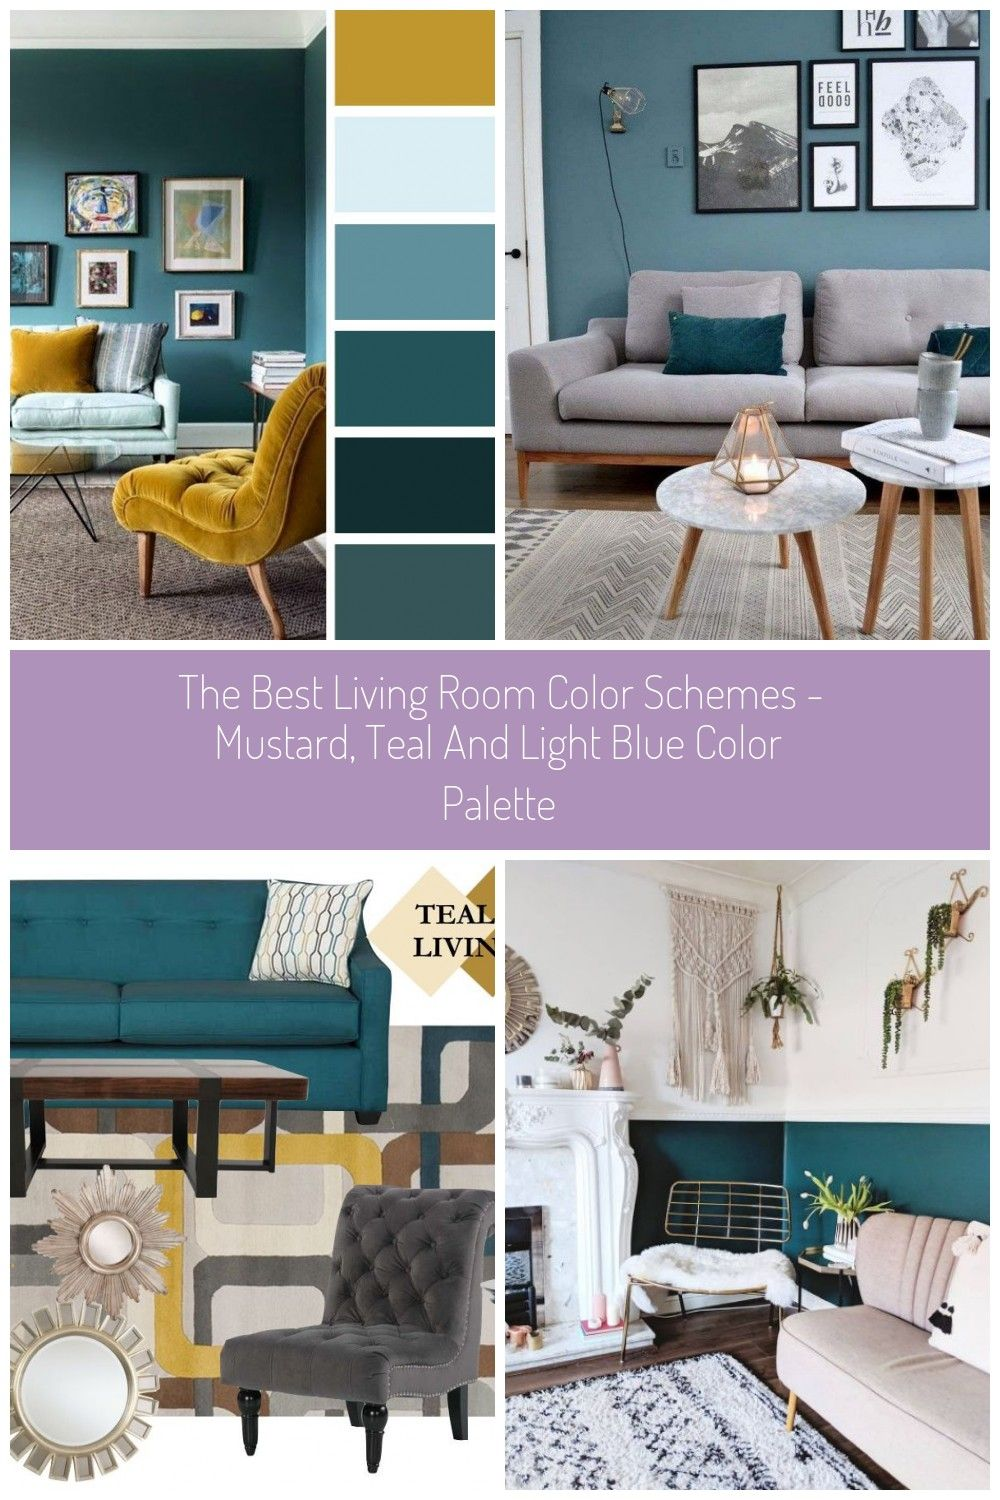 The best living room color schemes - Mustard, Teal and ...